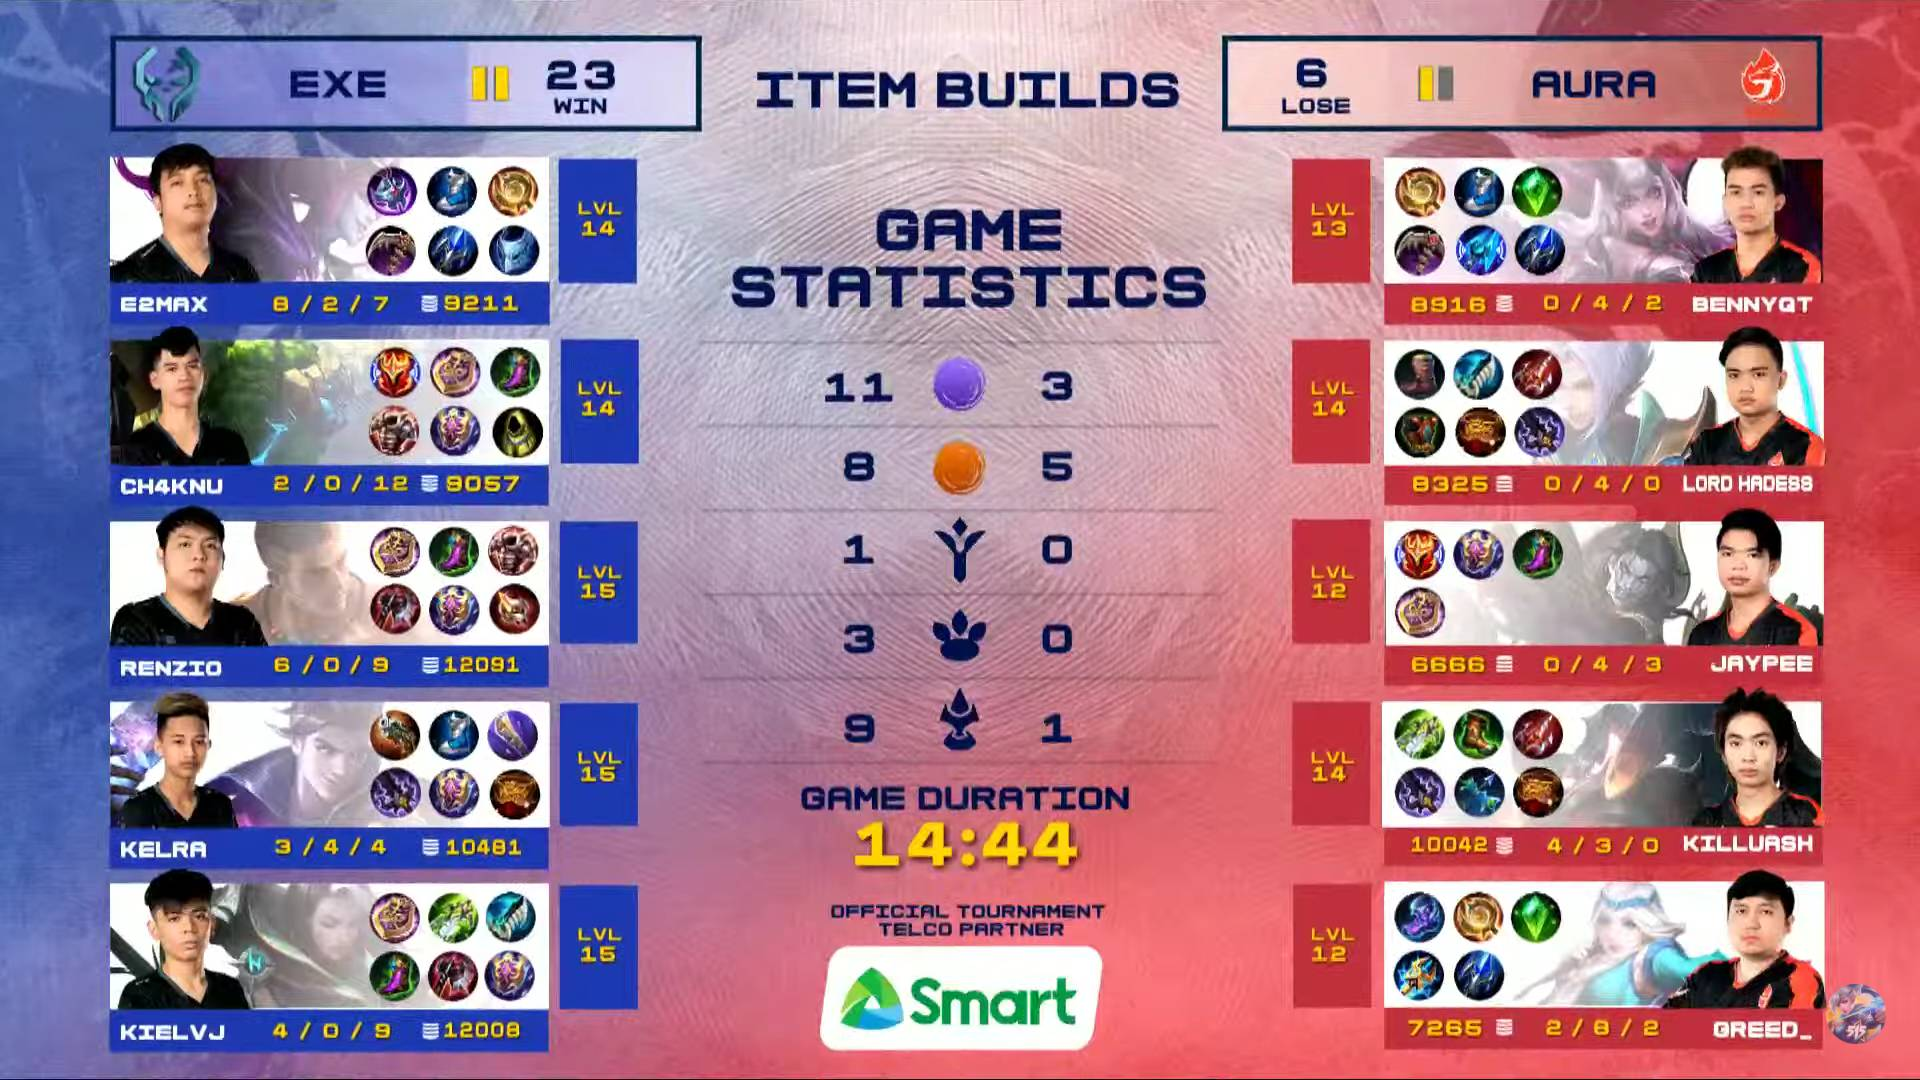 MPL-PH-Season-7-Execration-def-Aura-Game-3 Kielvj goes all out vs Aura, makes sure Exe remains in MPL PH upper bracket race ESports Mobile Legends MPL-PH News  - philippine sports news